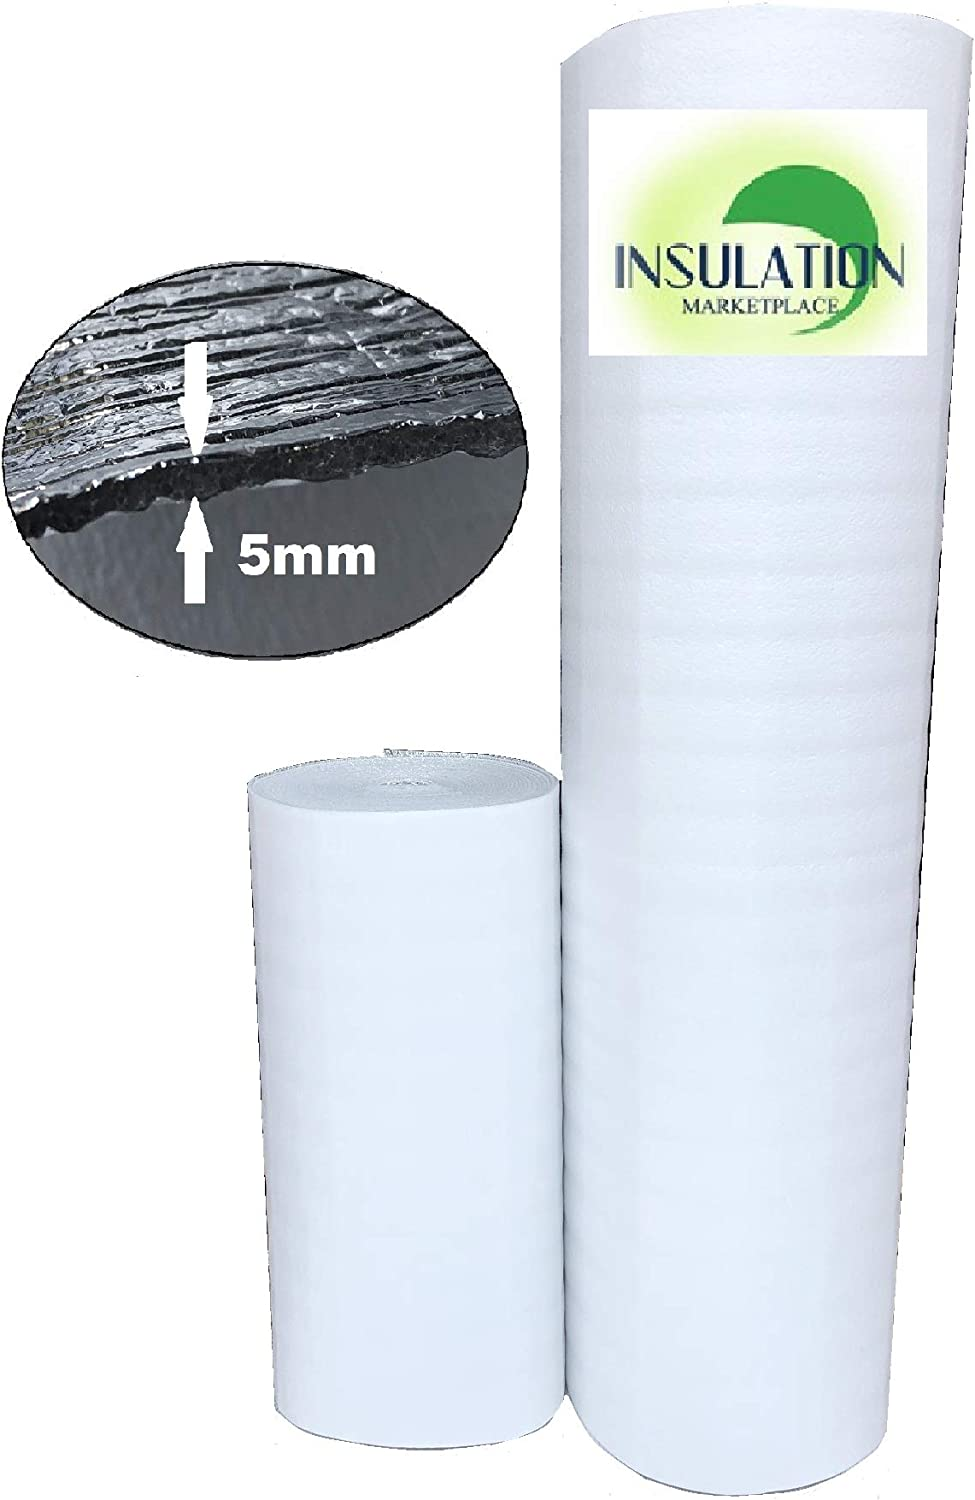 """SmartSHIELD -5mm 24""""x50ft White Reflective Foam Core Insulation roll, Cold and Heat Shield, Foam Core Radiant Barrier, Thermal Foil Insulation"""